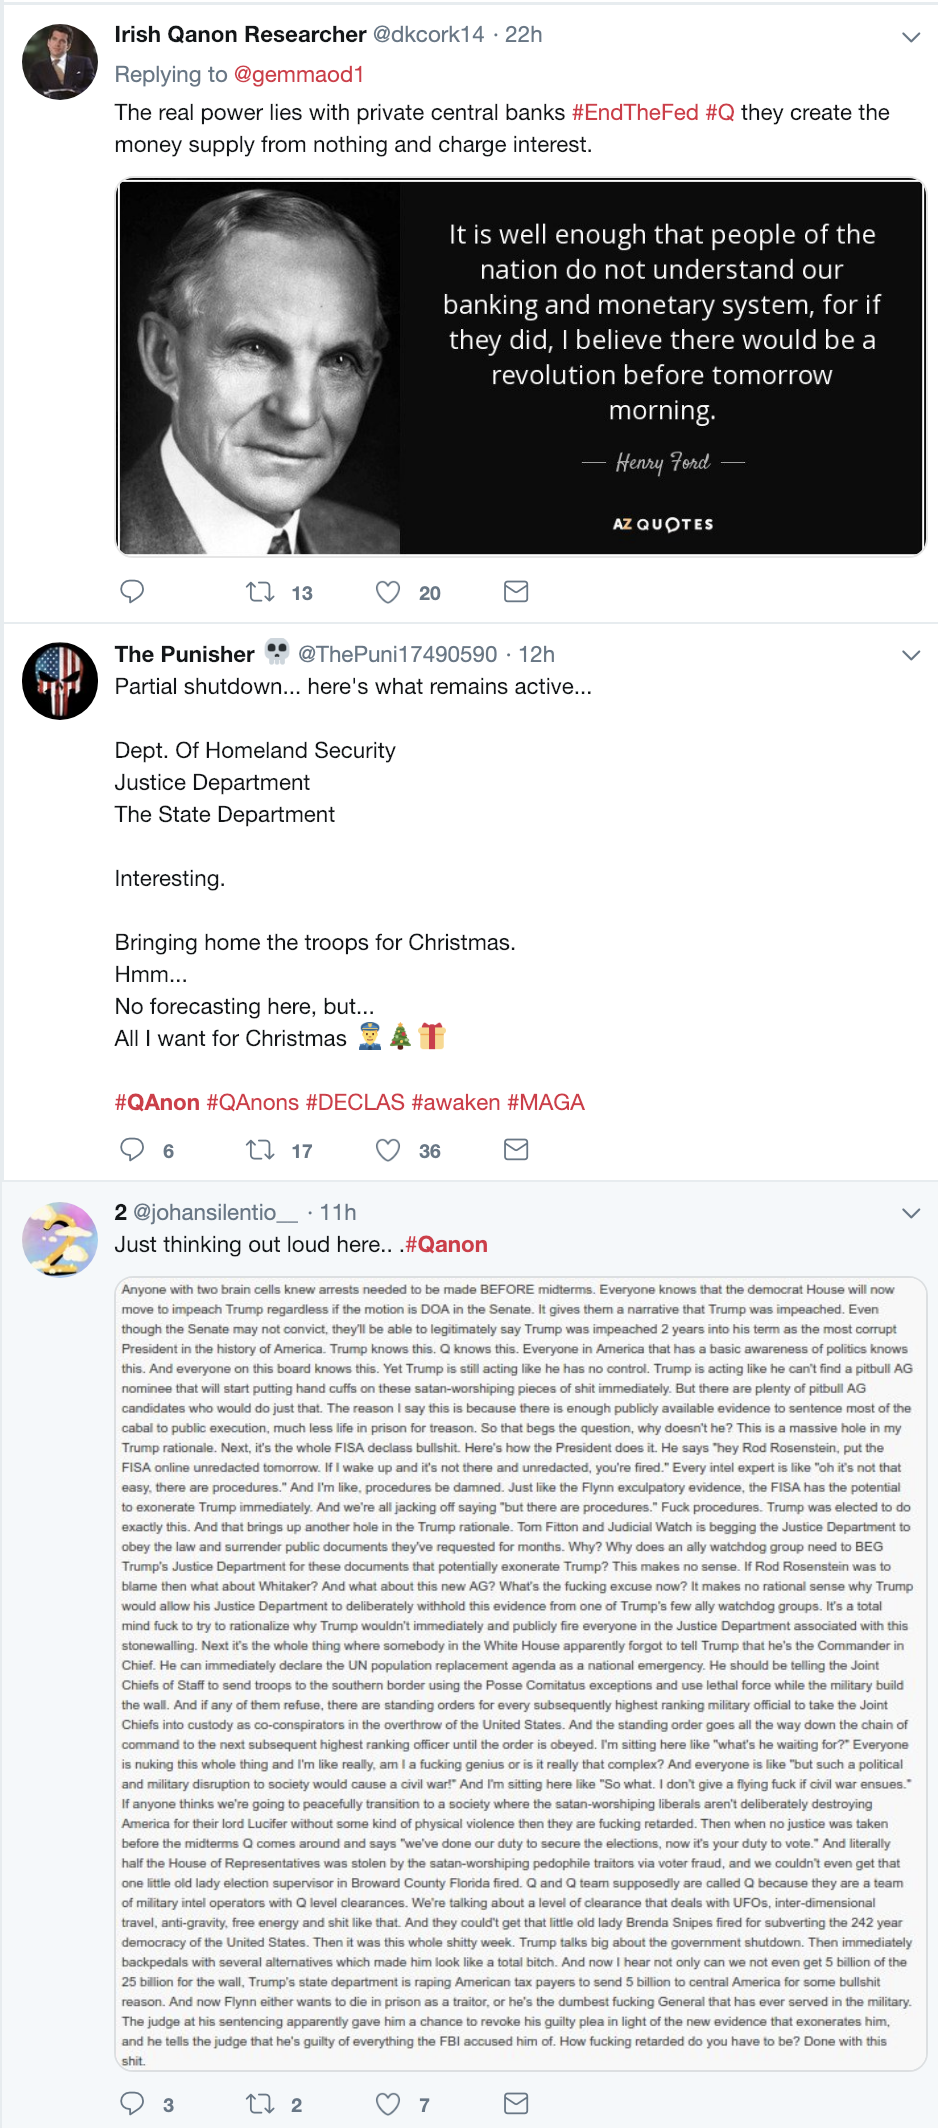 Screen-Shot-2018-12-23-at-10.44.21-AM Trump-Supporting 'QAnon' Conspiracy Theorists Whine About Being Alone For X-Mas Corruption Donald Trump Election 2016 Election 2018 Election 2020 Social Media Top Stories